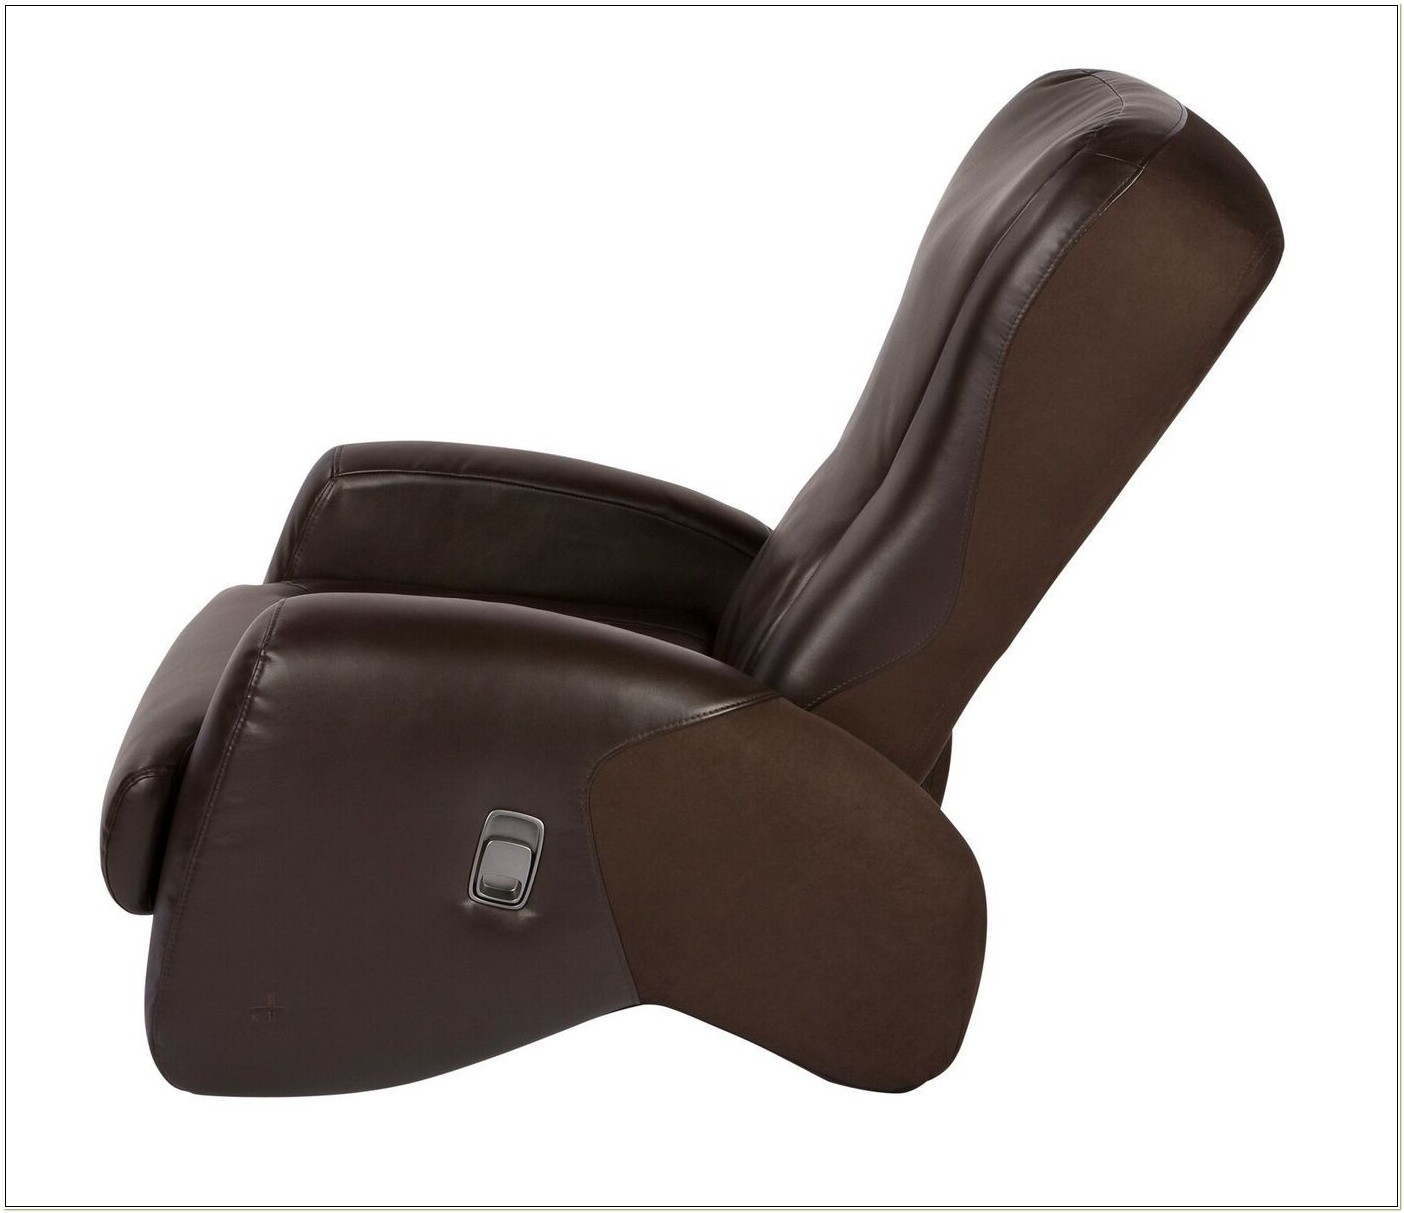 Human Touch Ijoy 2310 Black Massage Chair